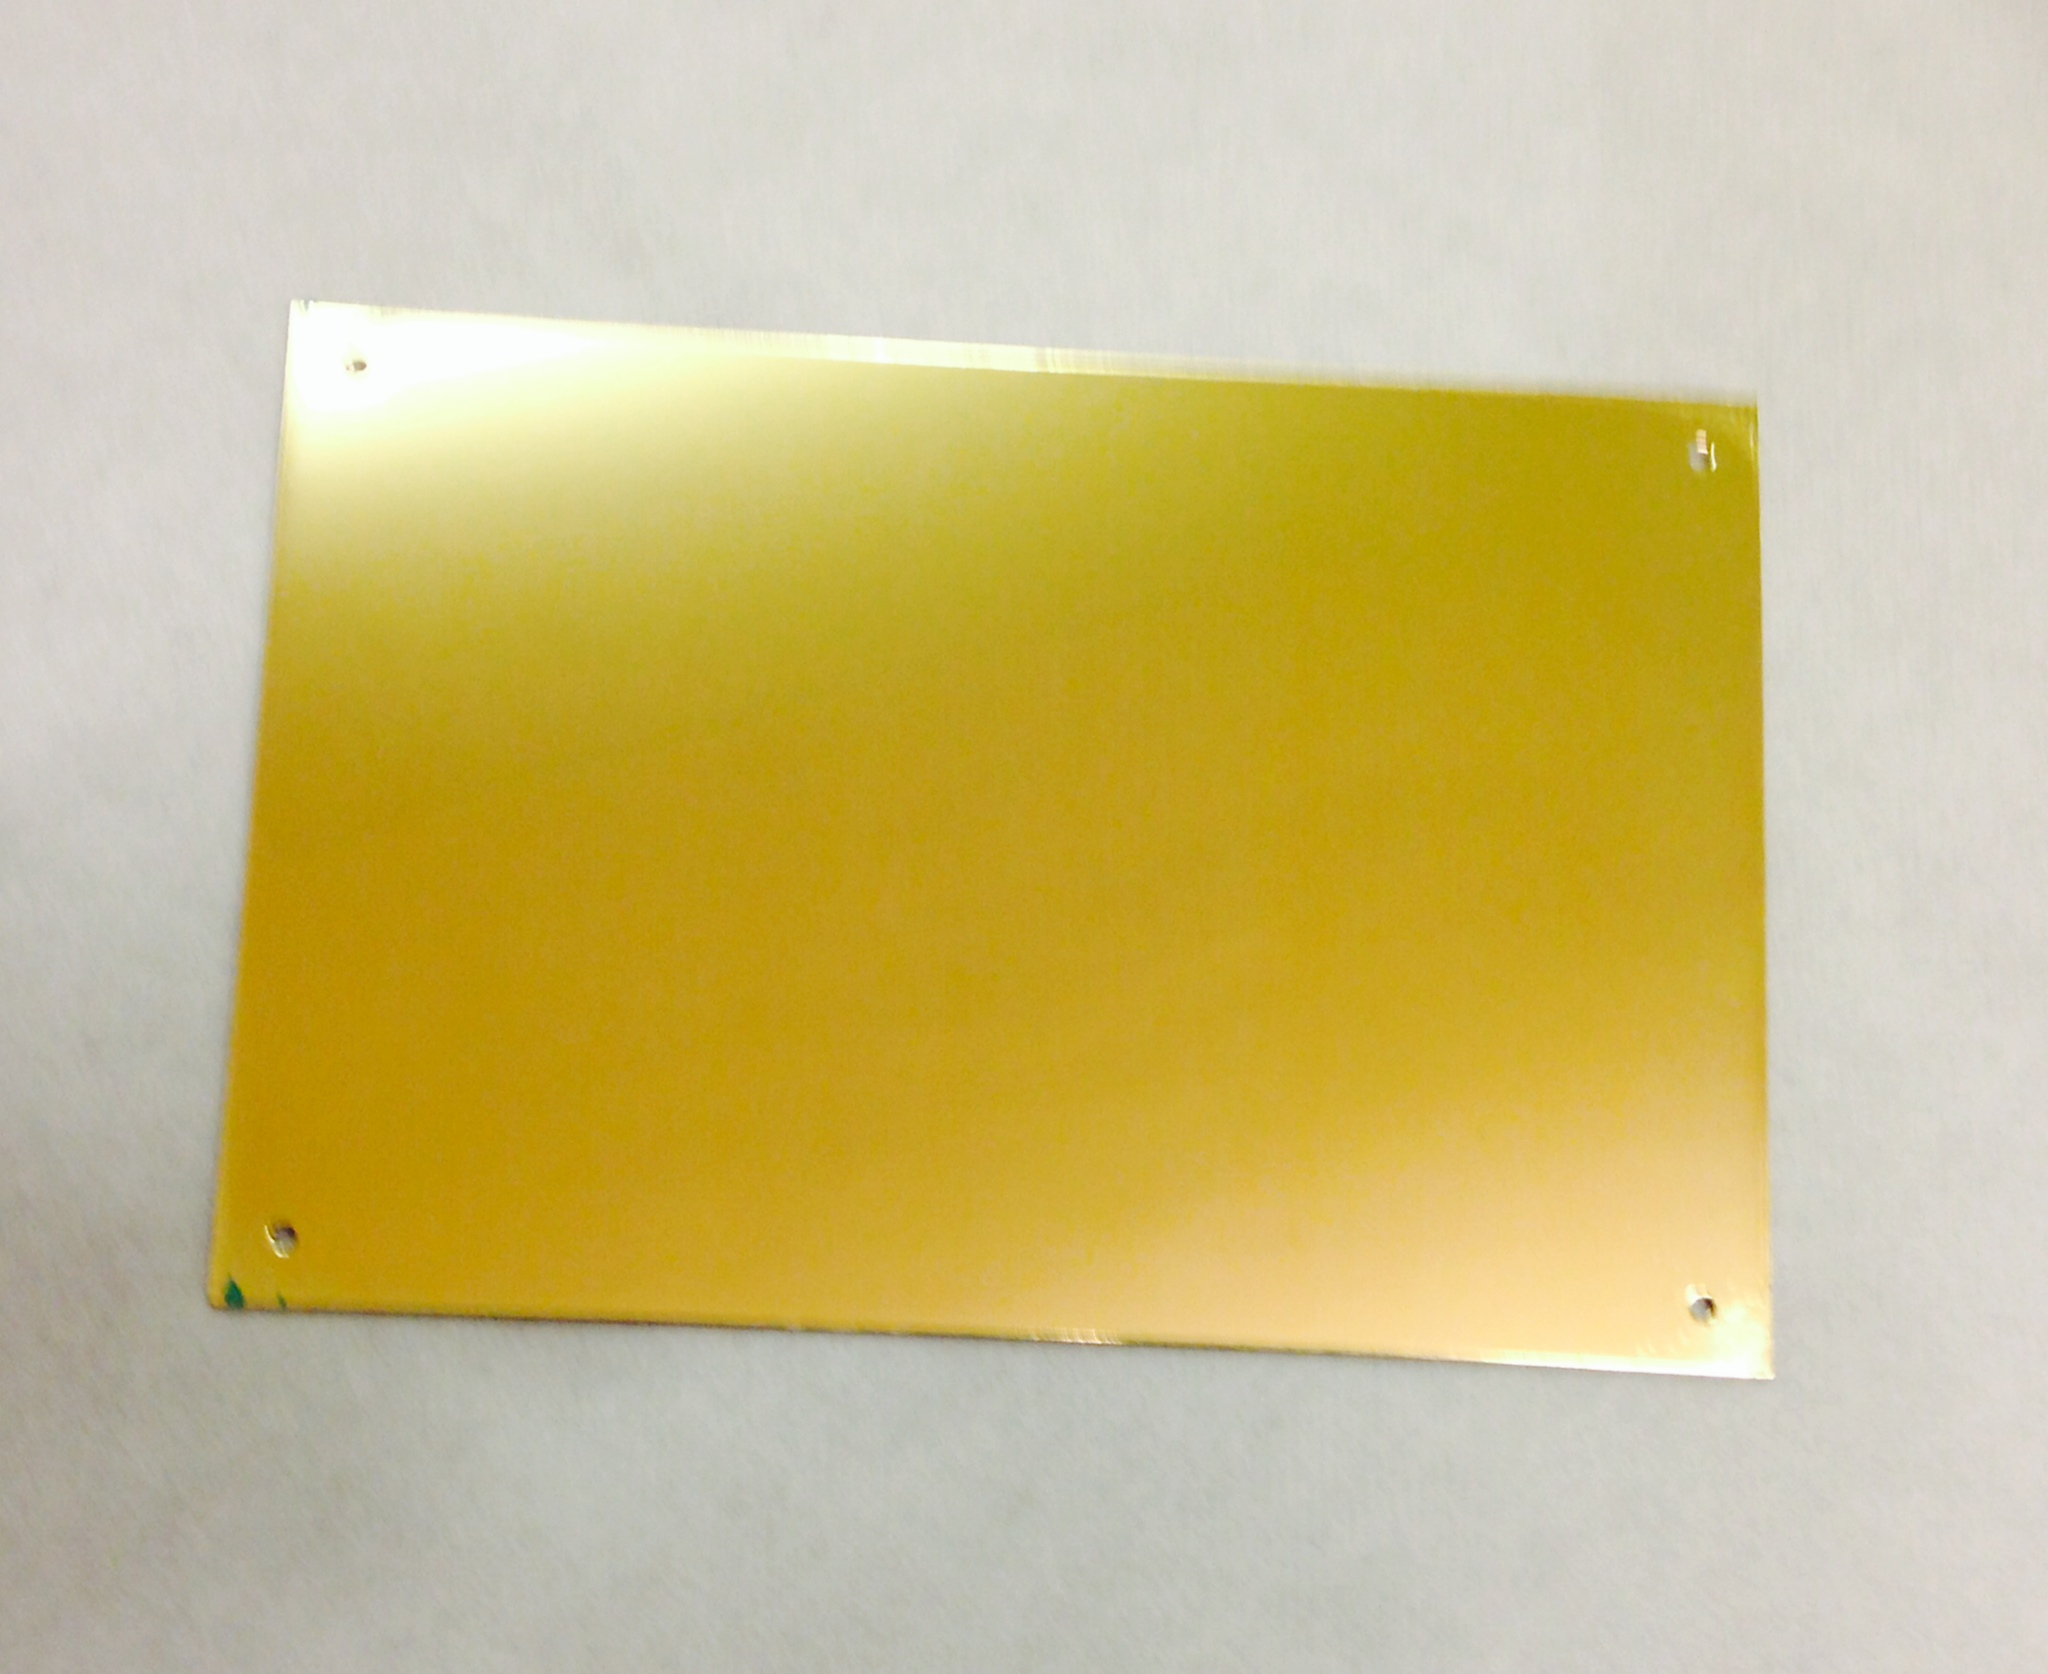 6x4 inch 10G Metal Name Plate